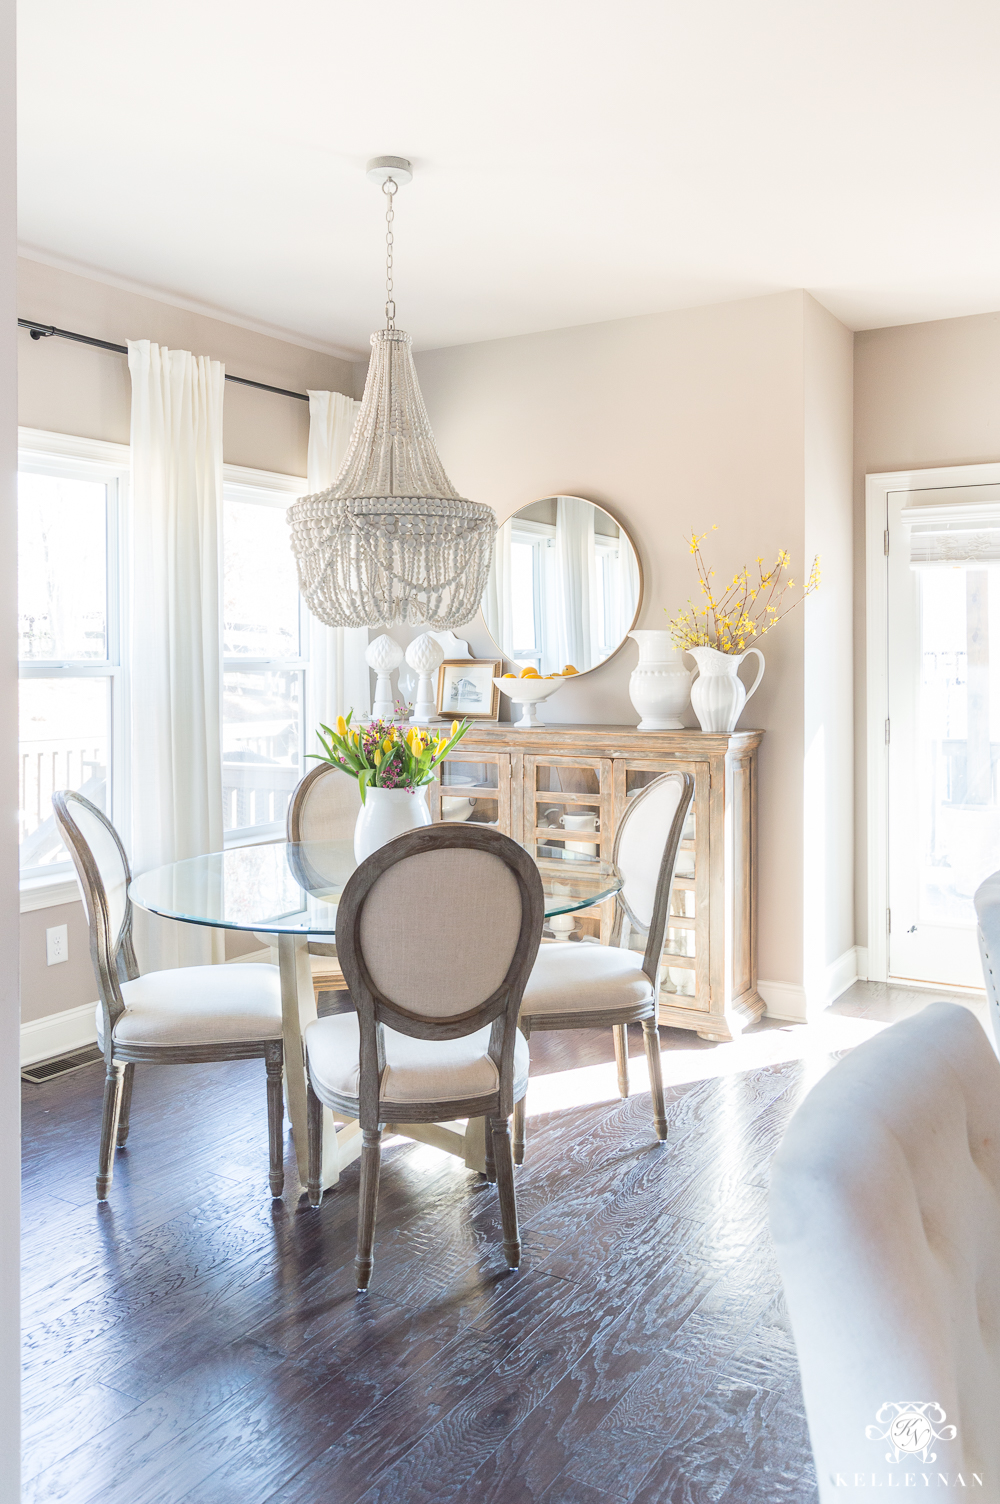 Breakfast Nook Area with Pottery Barn Francesca Beaded Chandelier